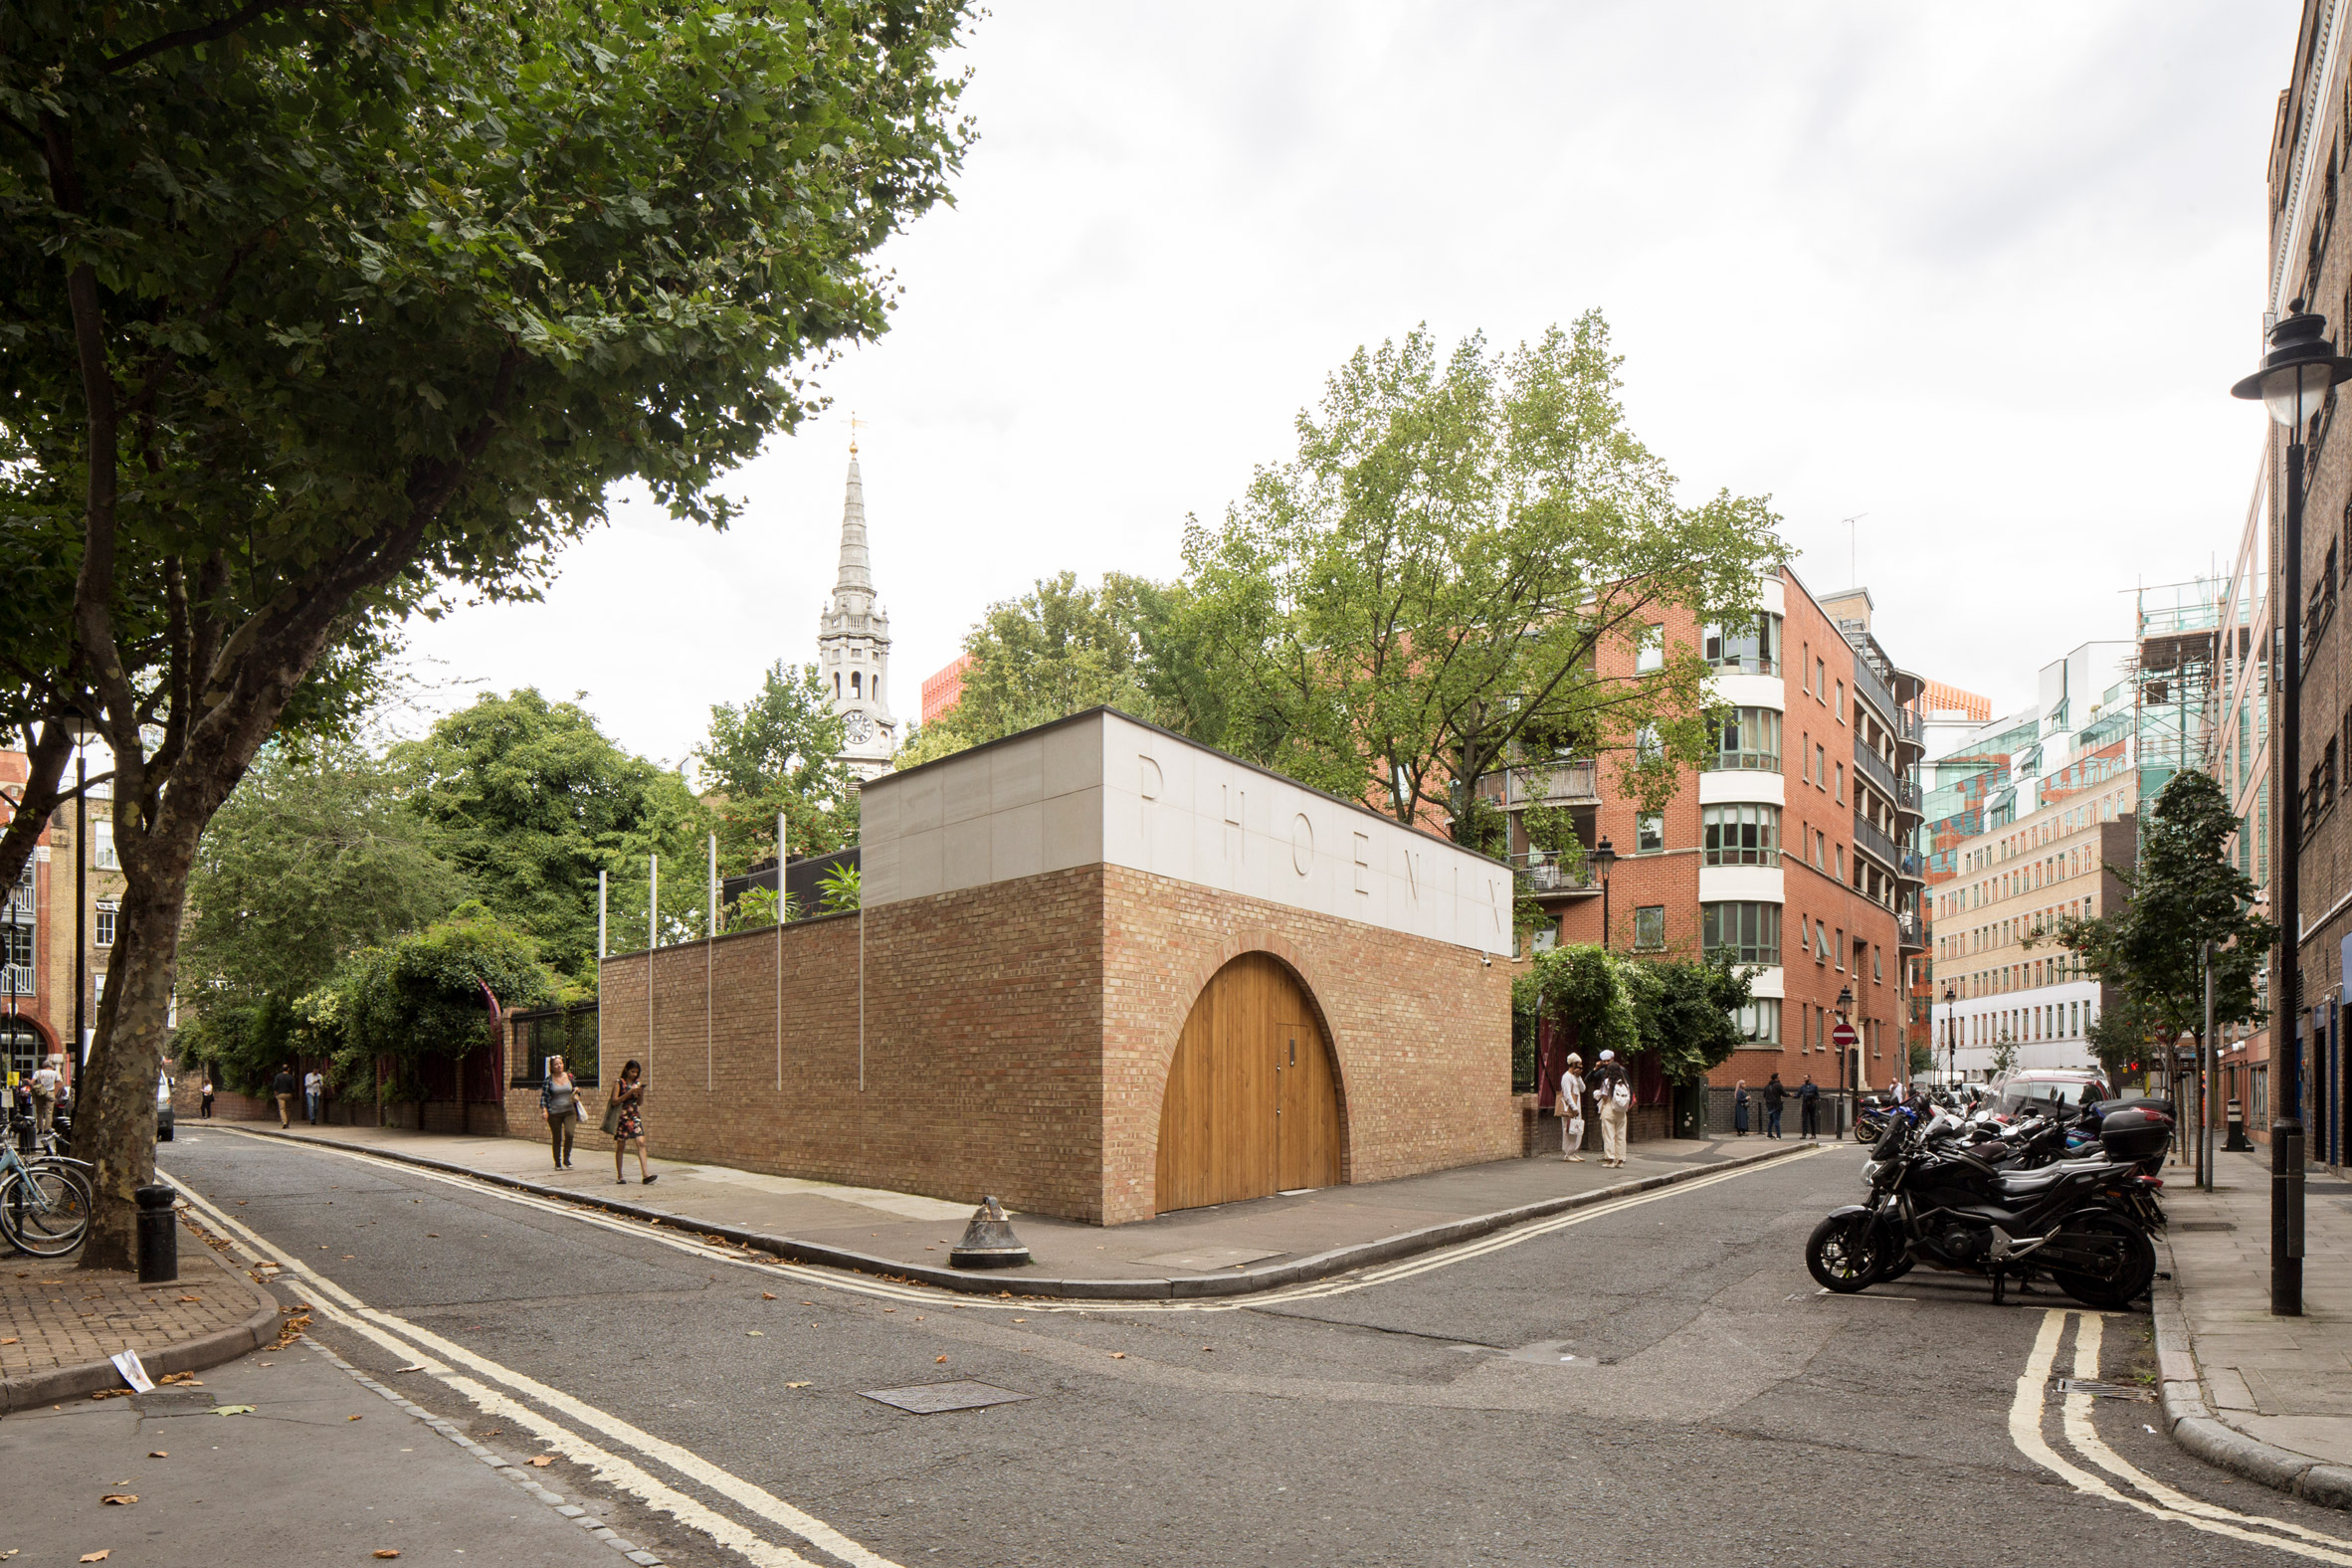 Office Sian Adds Brick And Limestone Building To London